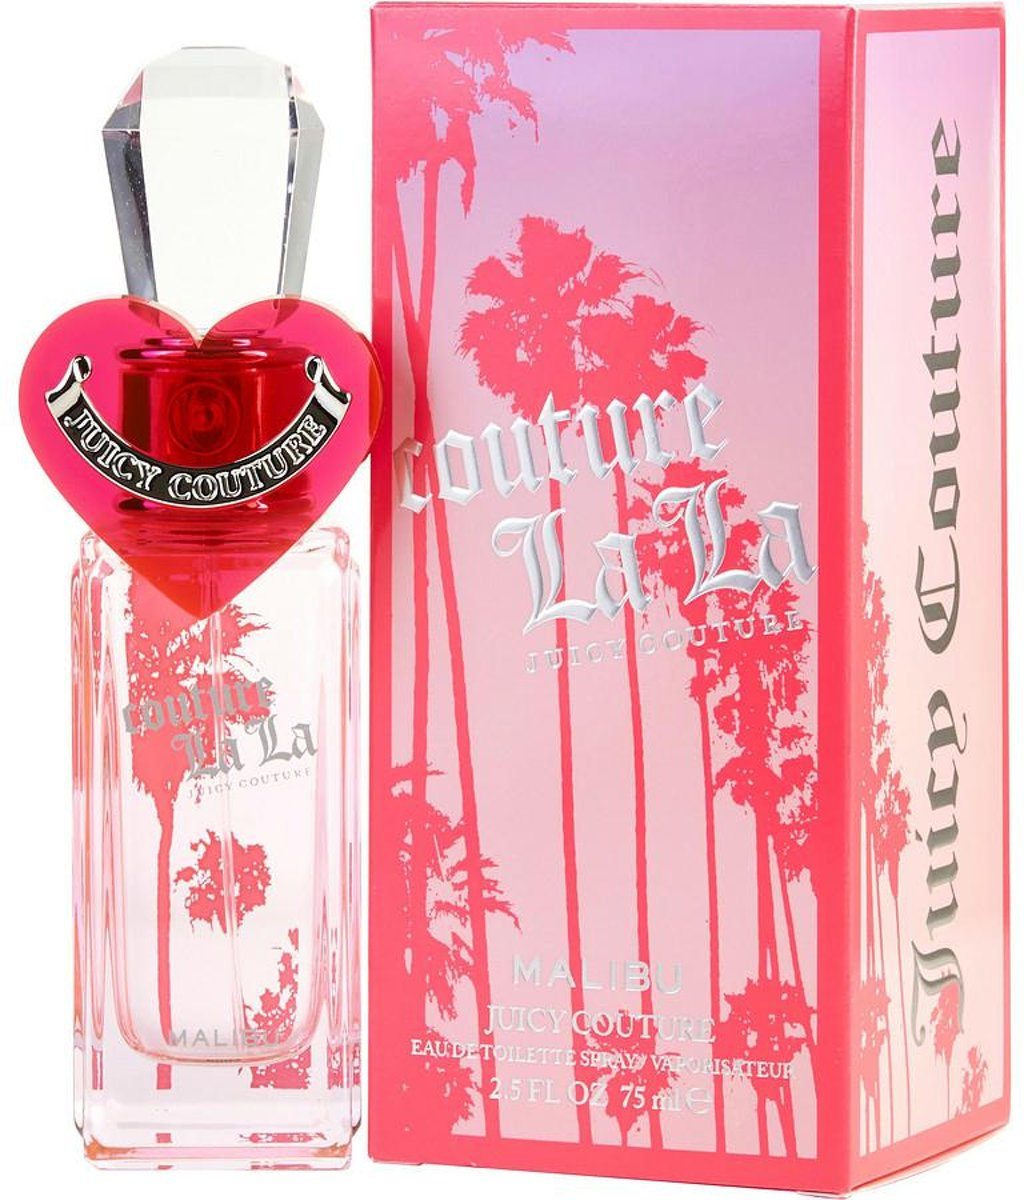 Juicy Couture La La Malibu EDT 75 ml